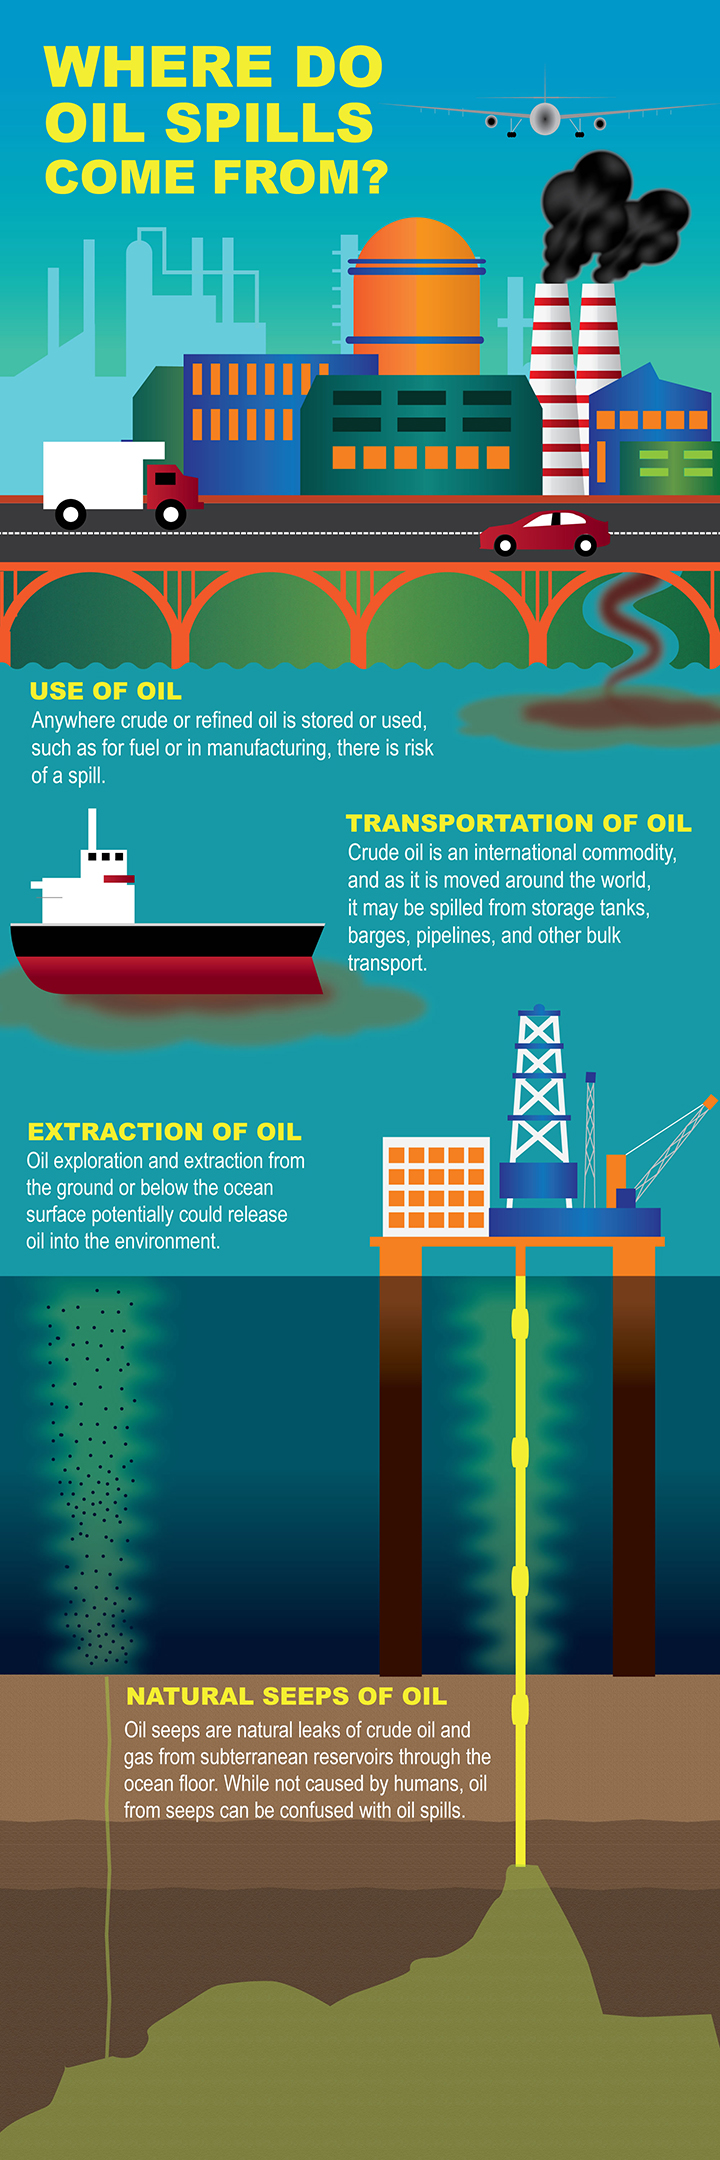 Graphic showing buildings and cars using oil, a tanker transporting oil, and a rig drilling for oil in the ocean, with a natural seep leaking oil out of the seafloor. Use of oil: Anywhere crude or refined oil is stored or used, such as for fuel or in manufacturing, there is risk of a spill. Transportation of oil: Crude oil is an international commodity, and as it is moved around the world, it may be spilled from storage tanks, barges, pipelines, and other bulk transport. Extraction of oil: Oil exploration and extraction from the ground or below the ocean surface potentially could release oil into the environment. Natural seeps of oil: Oil seeps are natural leaks of crude oil and gas from subterranean reservoirs through the ocean floor. While not caused by humans, oil from seeps can be confused with oil spills.